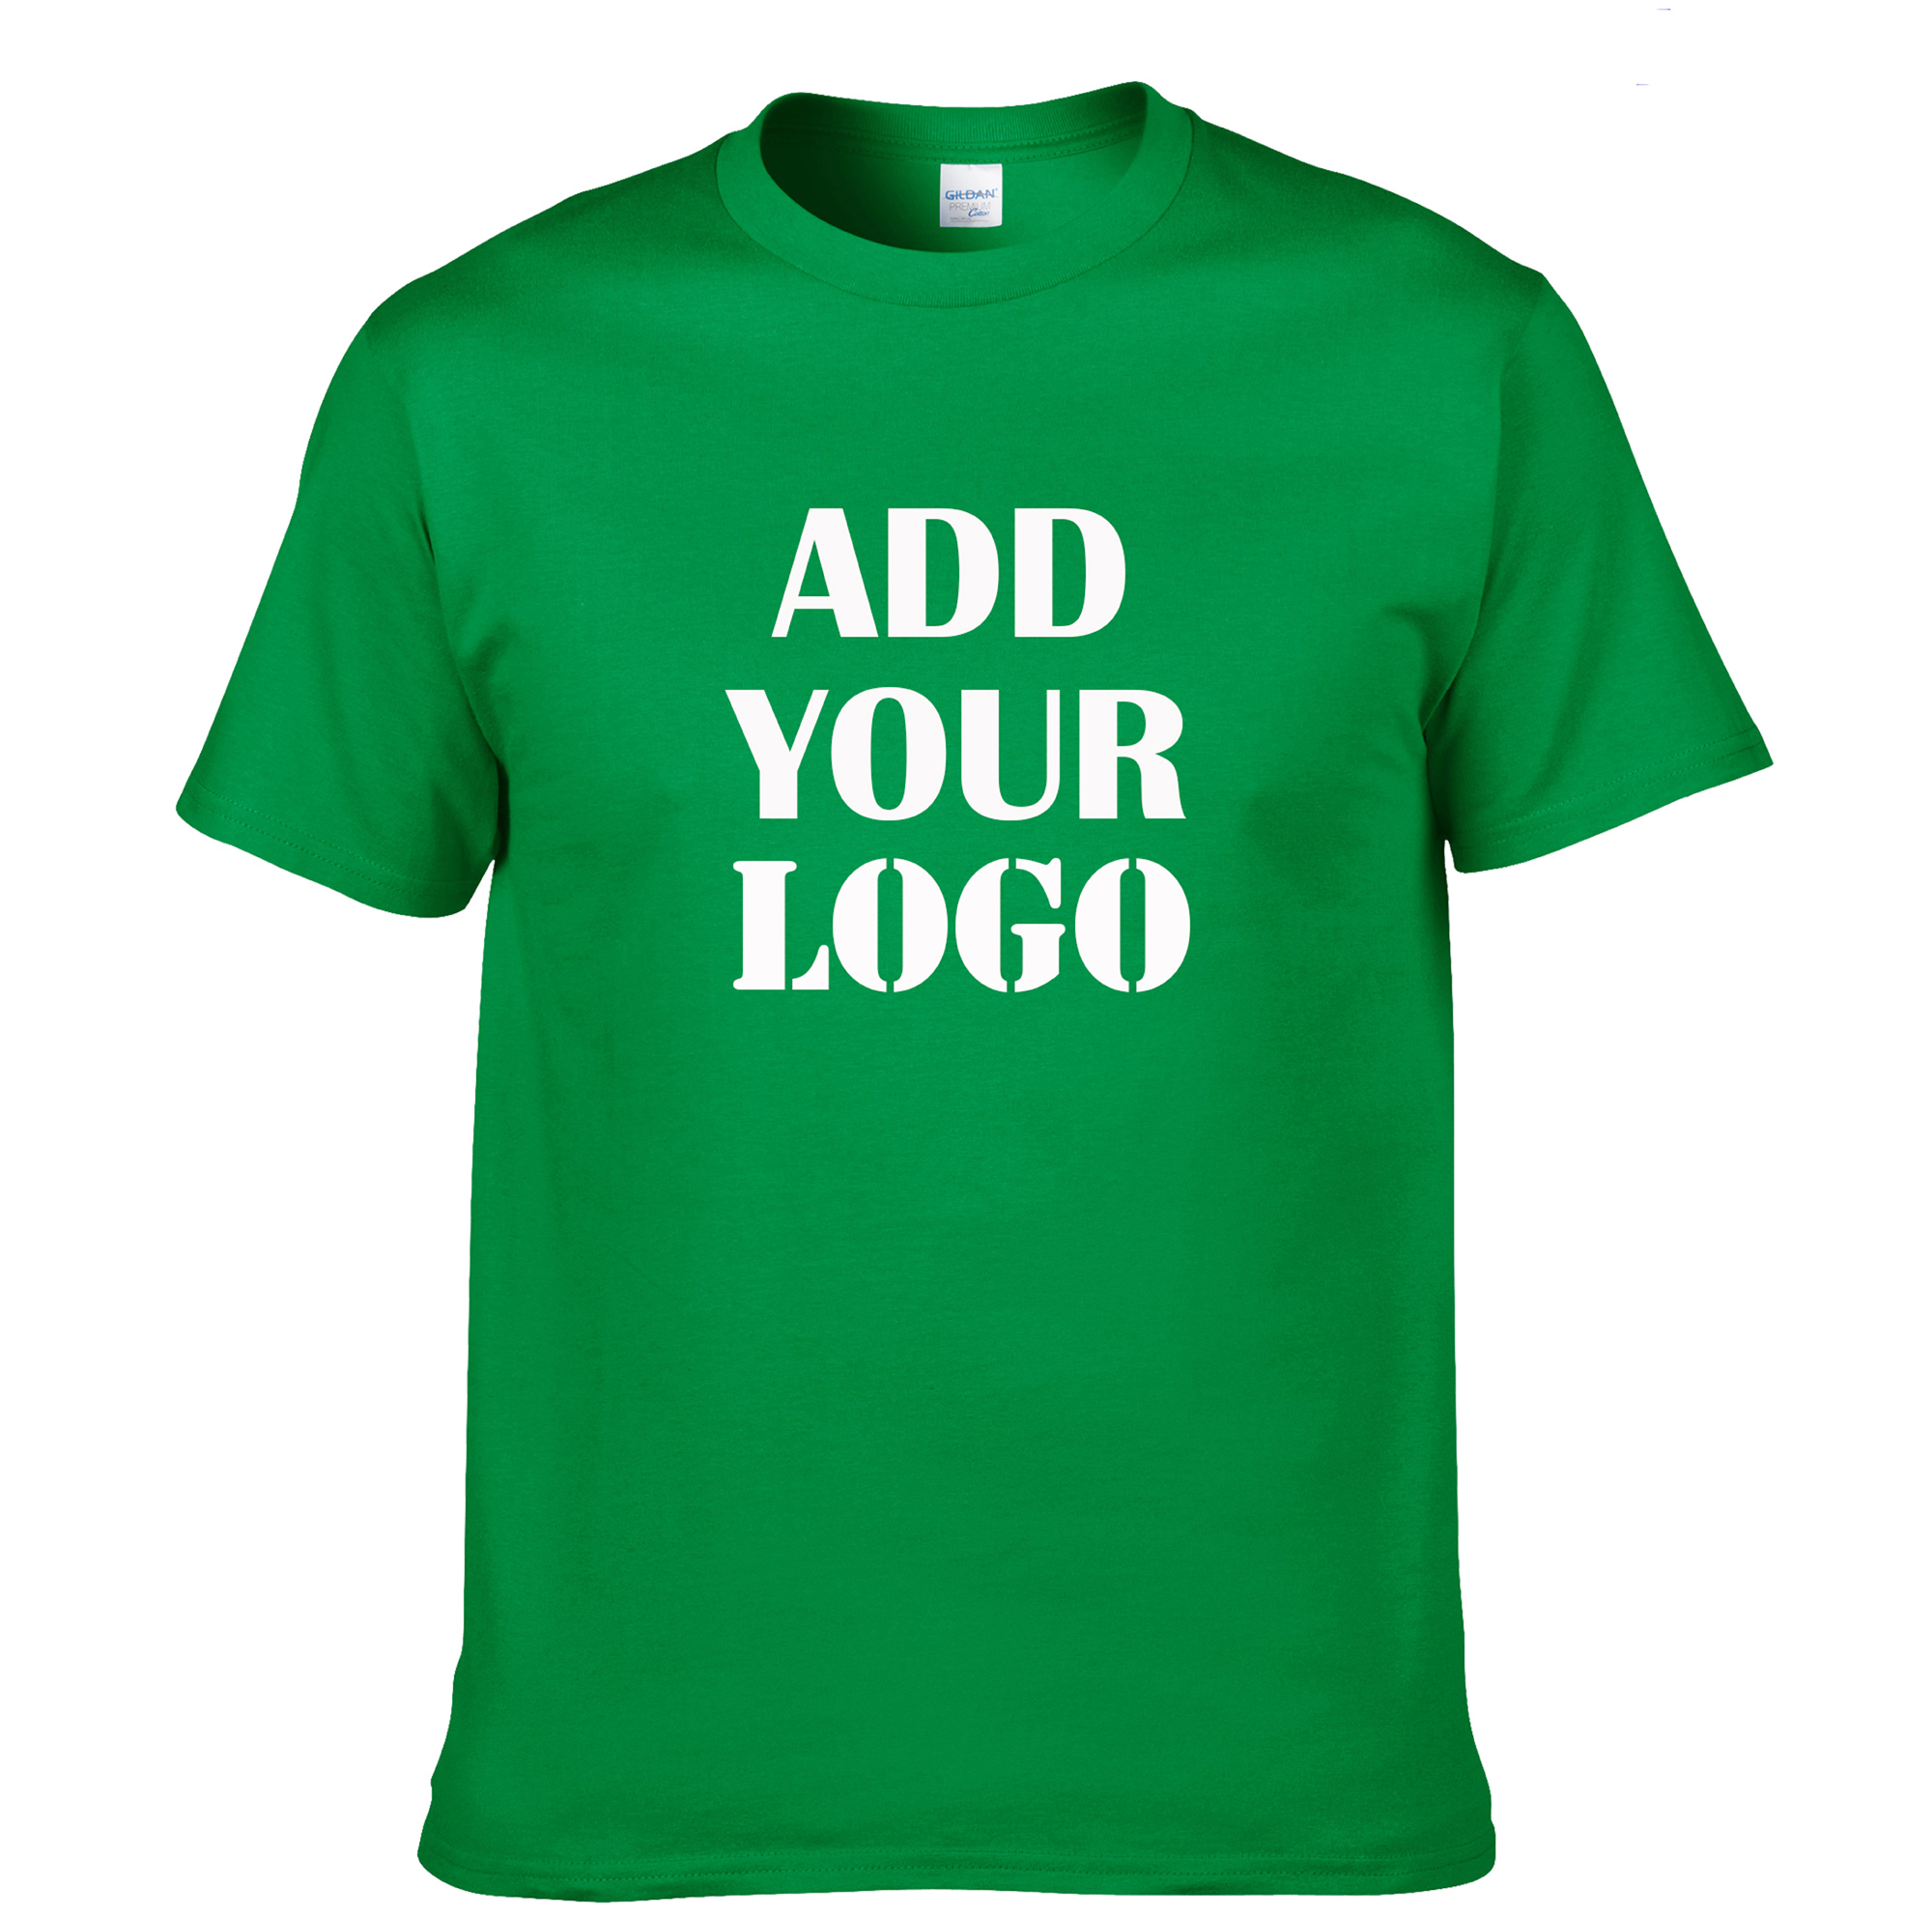 Free shipping high quality unisex t shirt 100% cotton , optional color t shirt printing custom t shirt with your logo